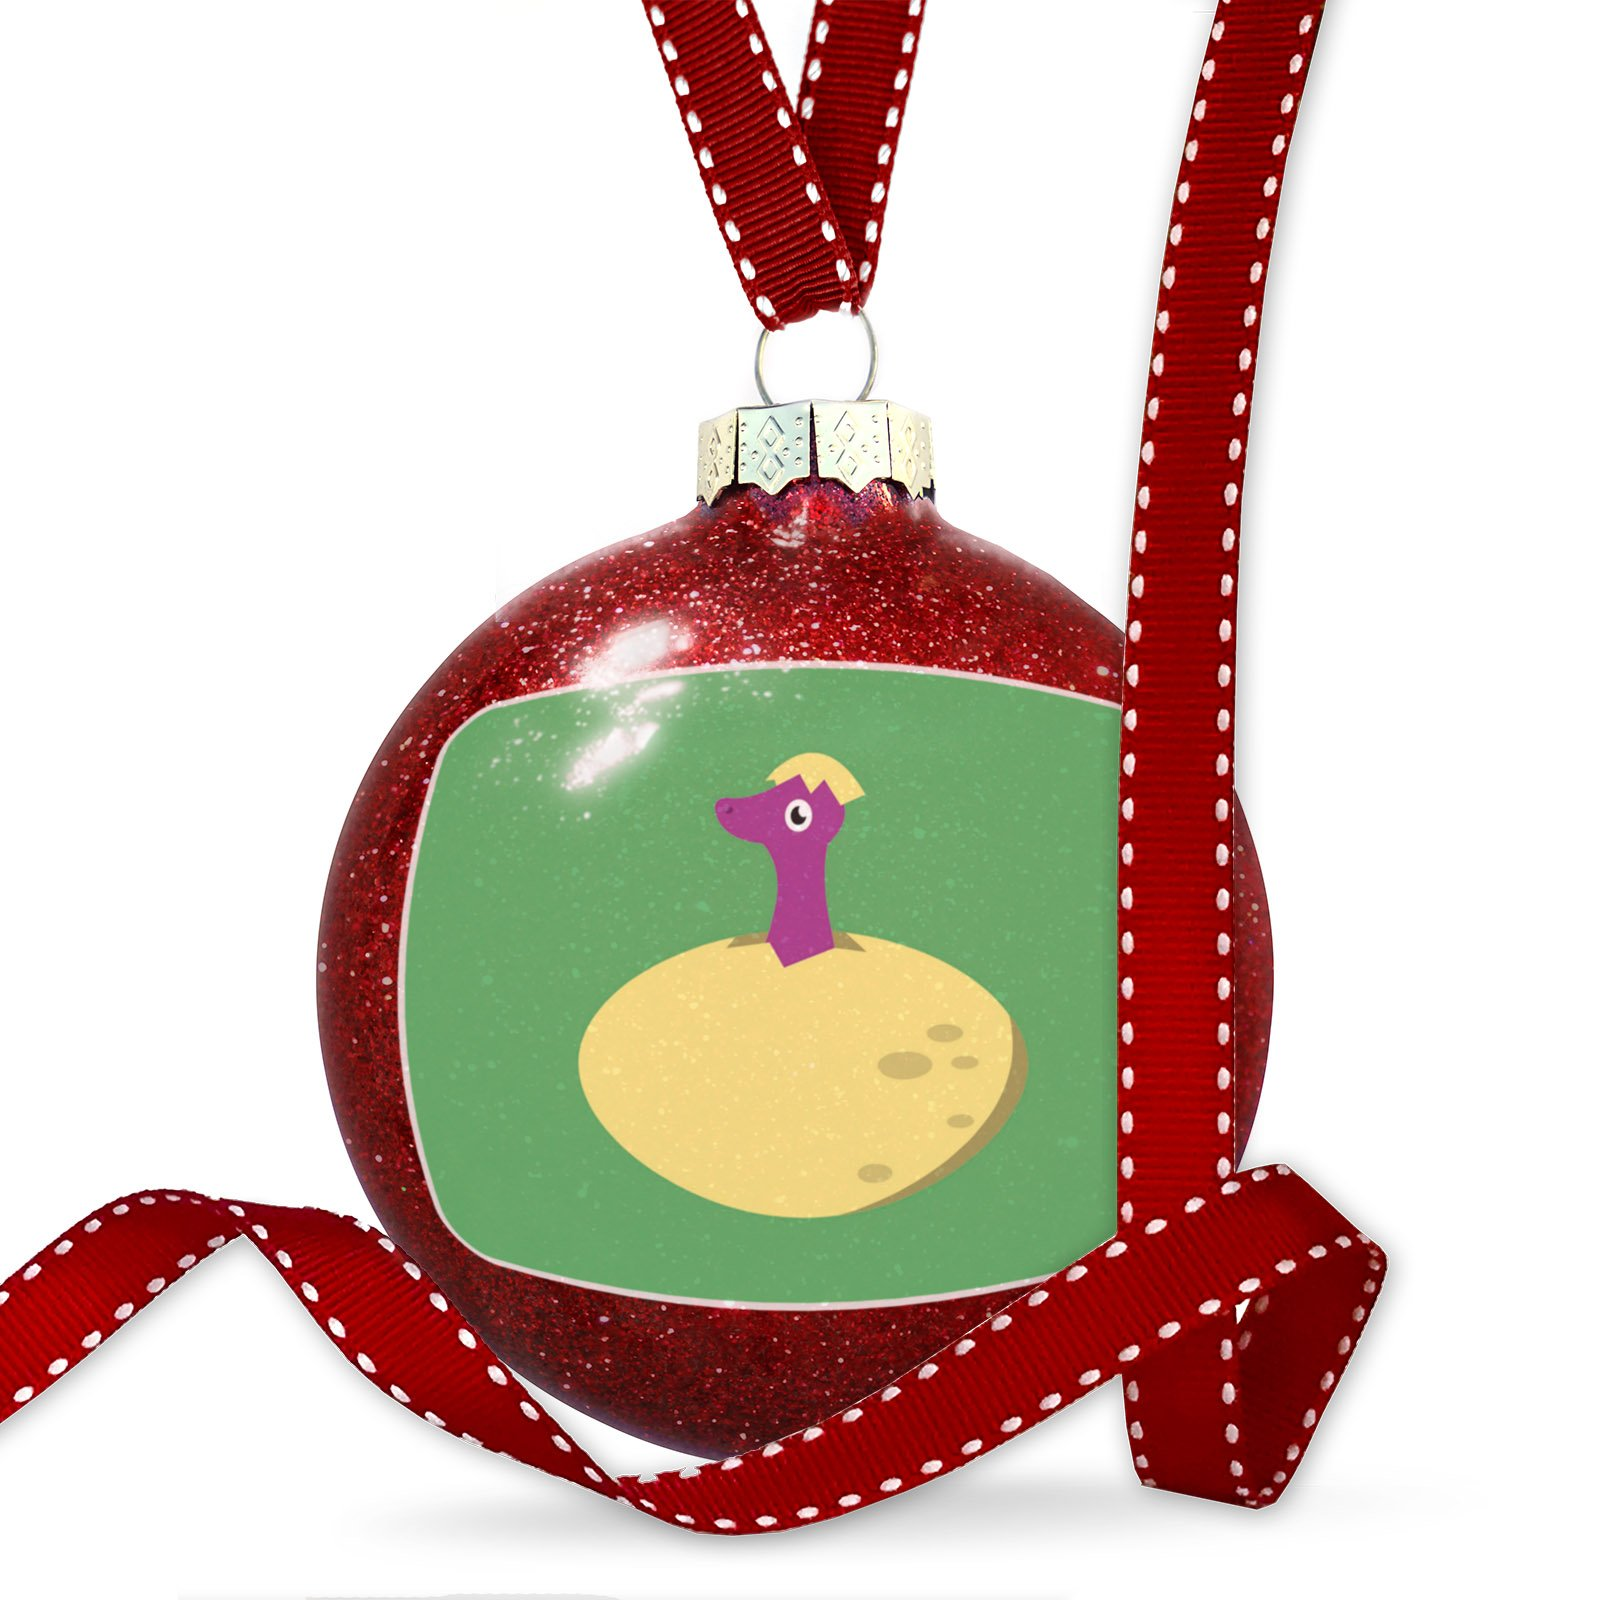 Christmas Decoration Cute Animals for Kids Dinosaur in Egg Ornament